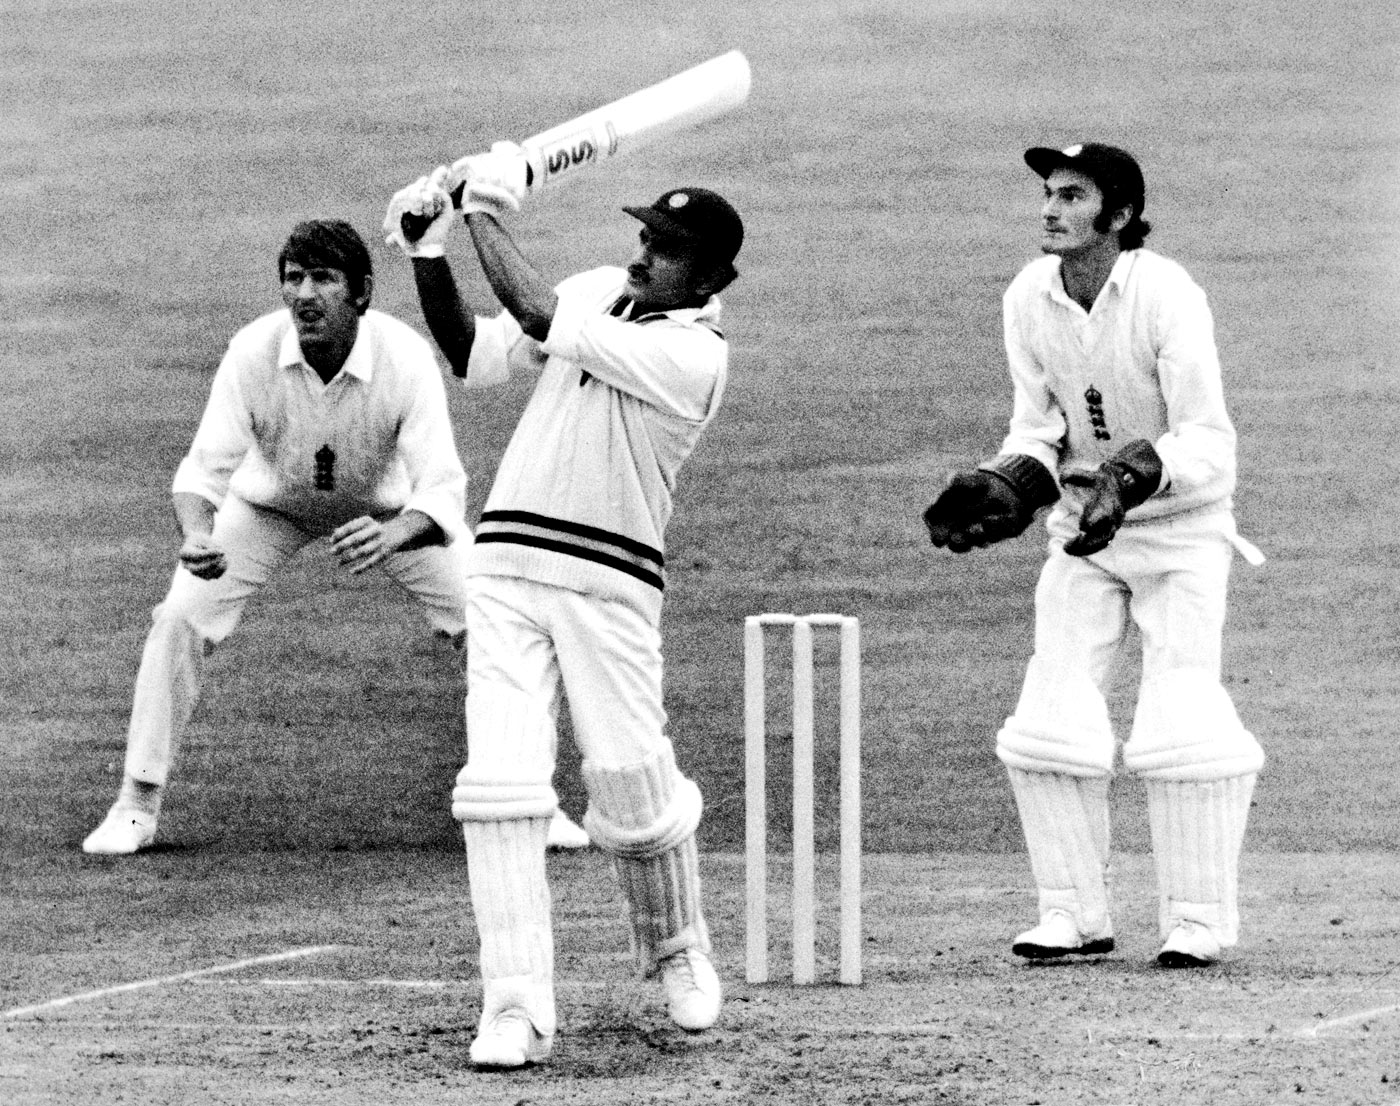 File image of Ajit Wadekar playing a shot during the tour of England in 1971. (Getty Images)